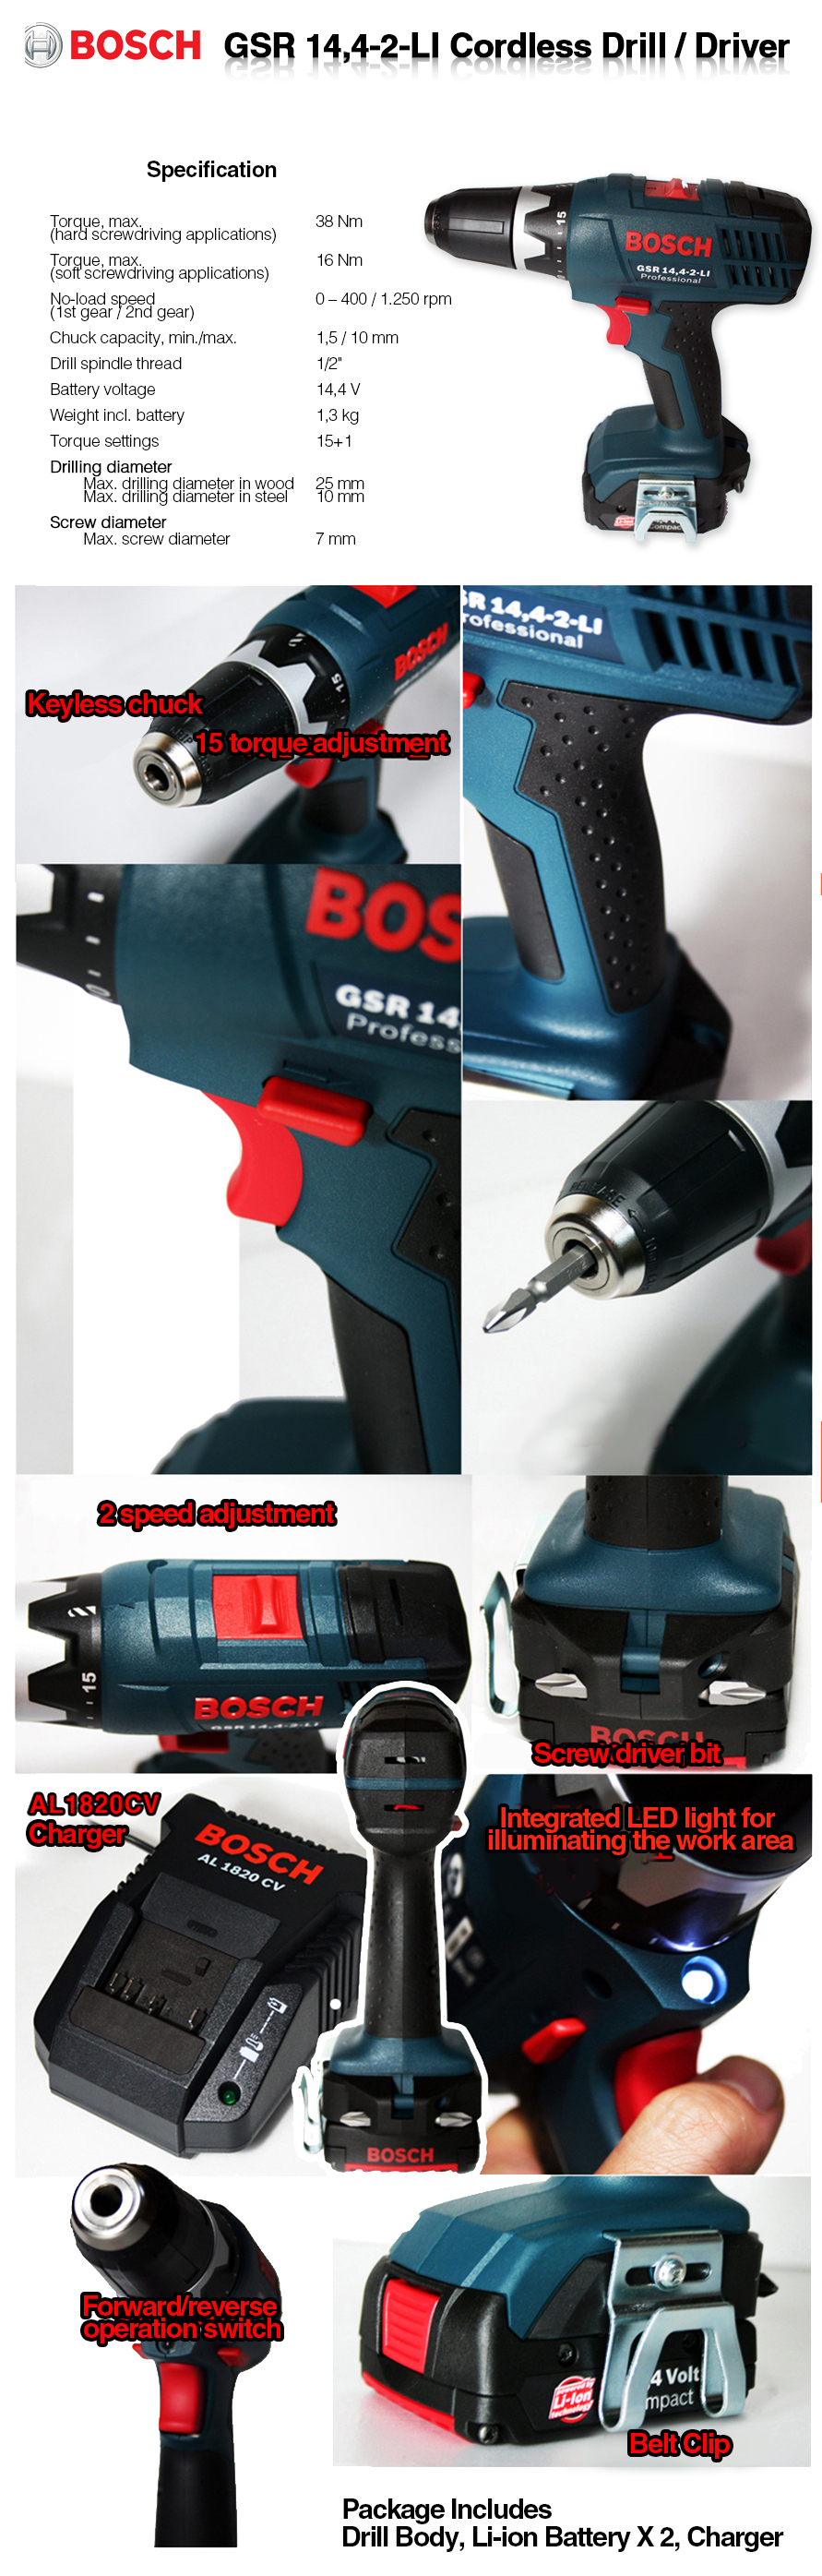 bosch gsr 14 4 2 li cordless drill driver 14 4v 1 2 chuck size extra baterry ebay. Black Bedroom Furniture Sets. Home Design Ideas